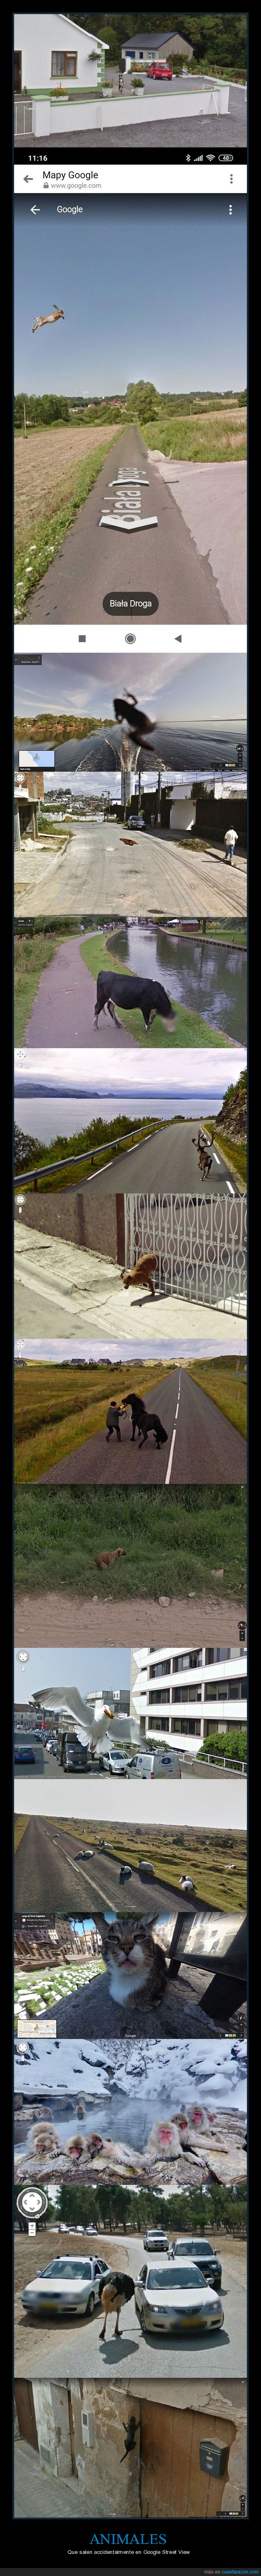 animales,street view,wtf